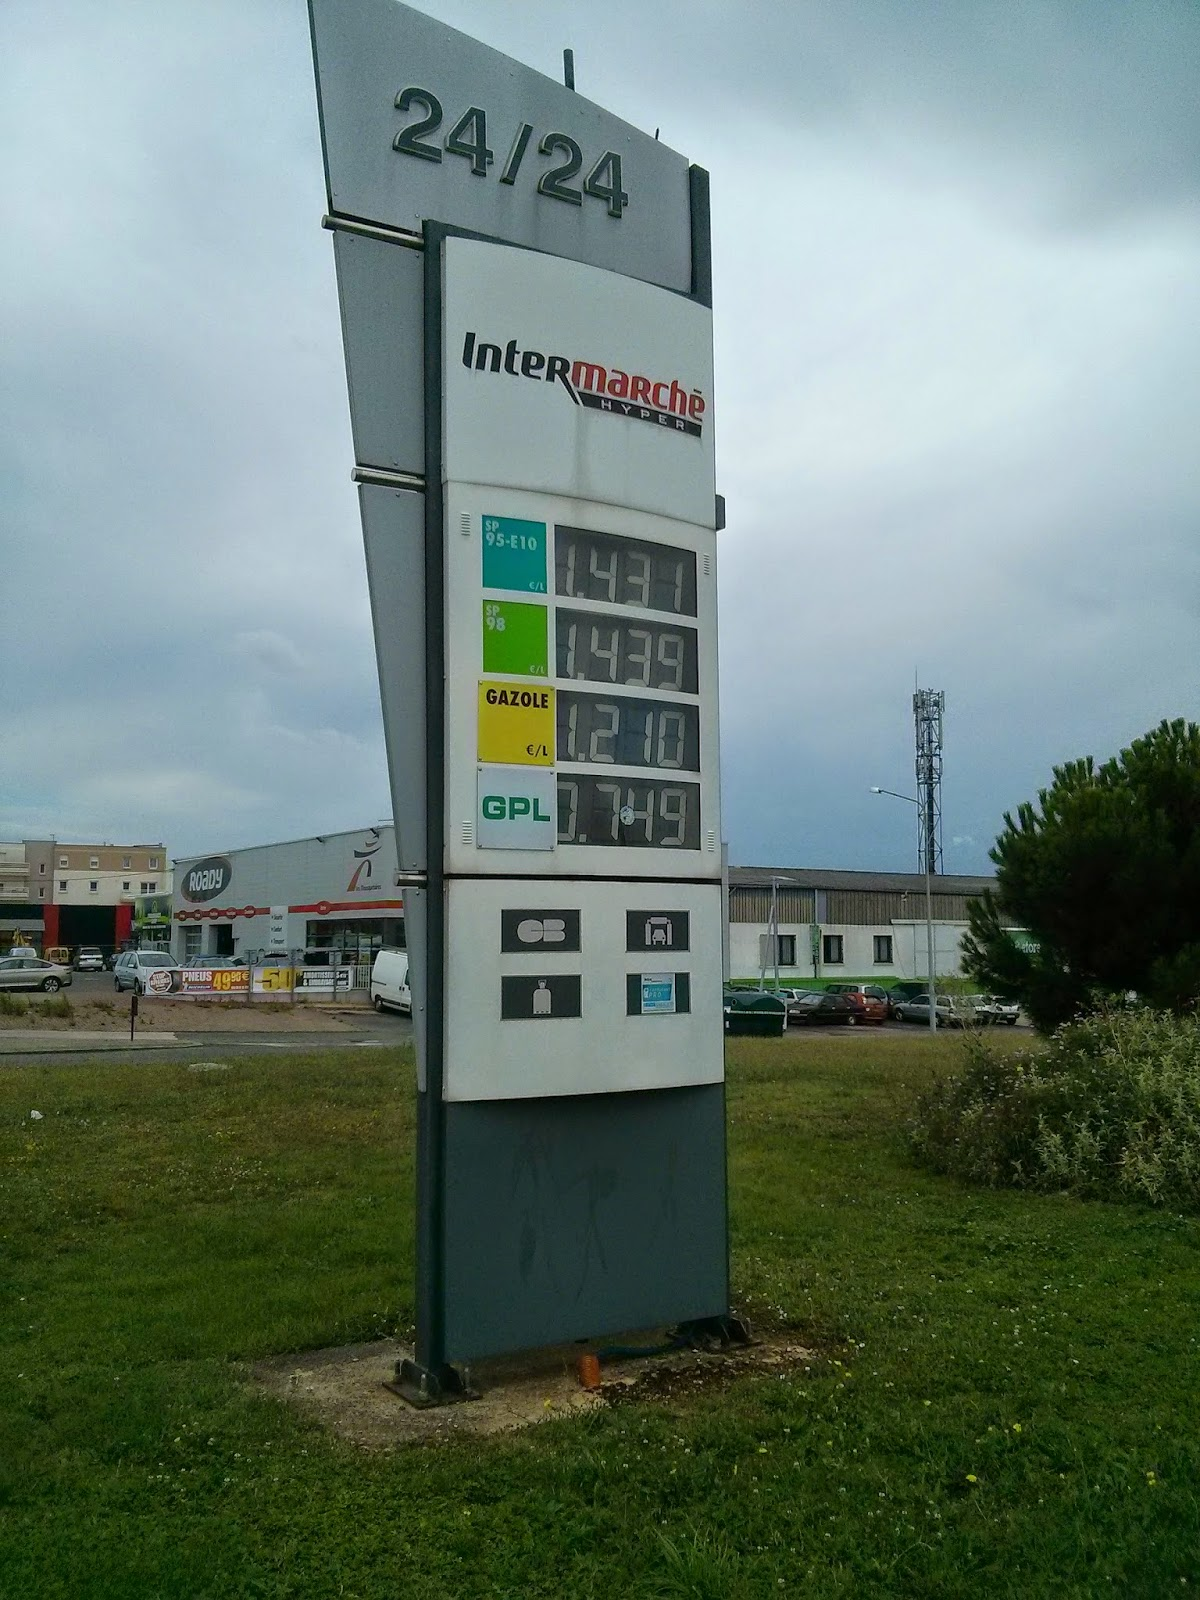 photo of the prices for petrol and diesel at the start of August 2014